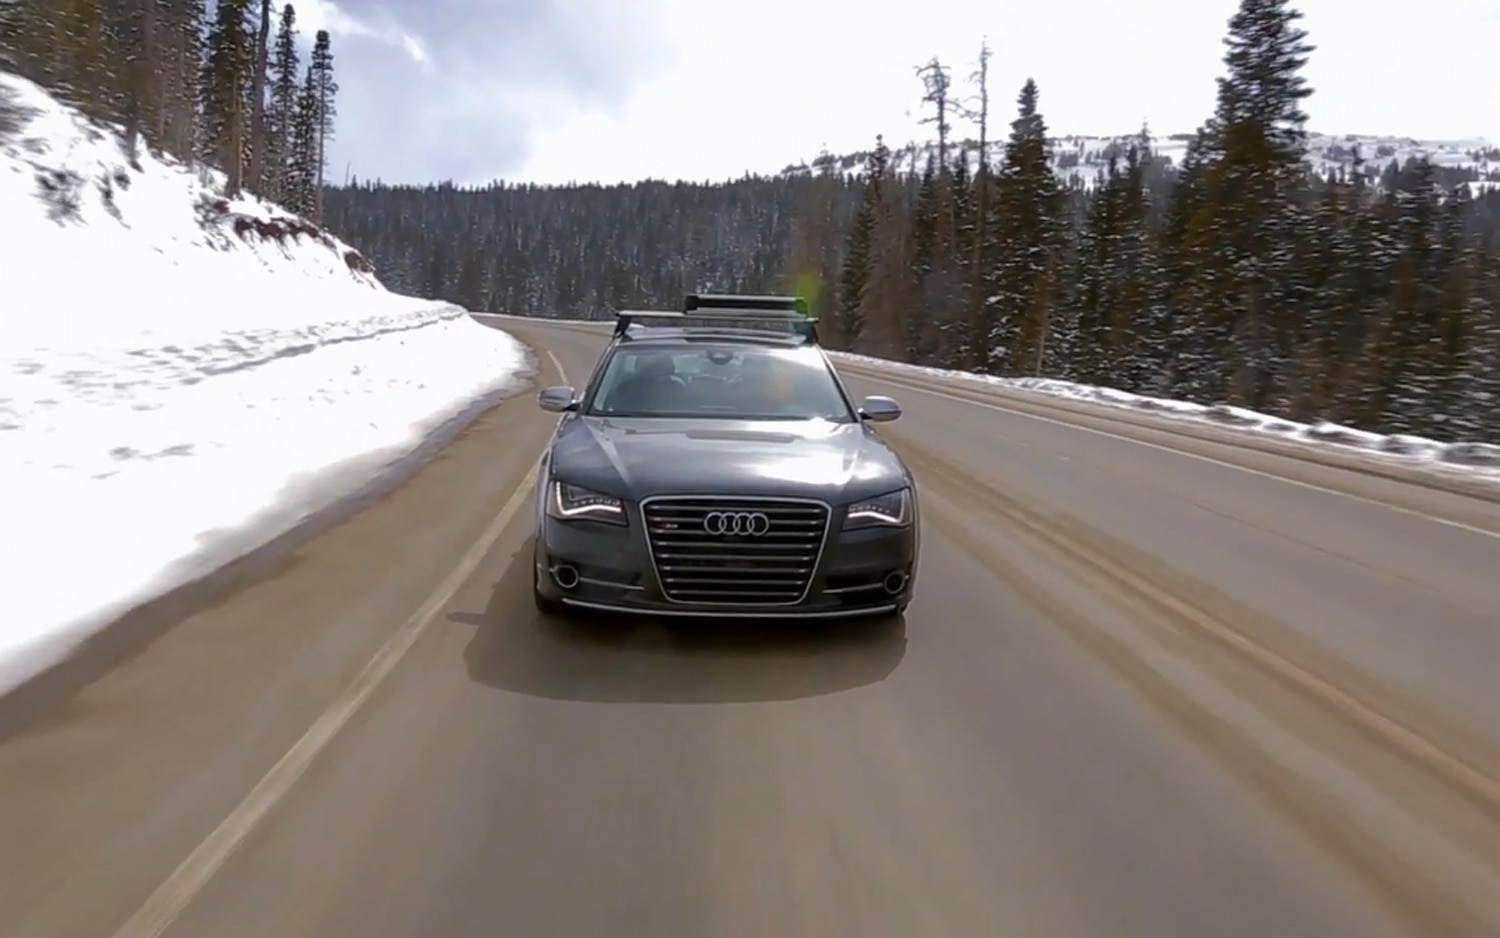 2013 Audi S8 Epic Drive In Rocky Mountains Image 21